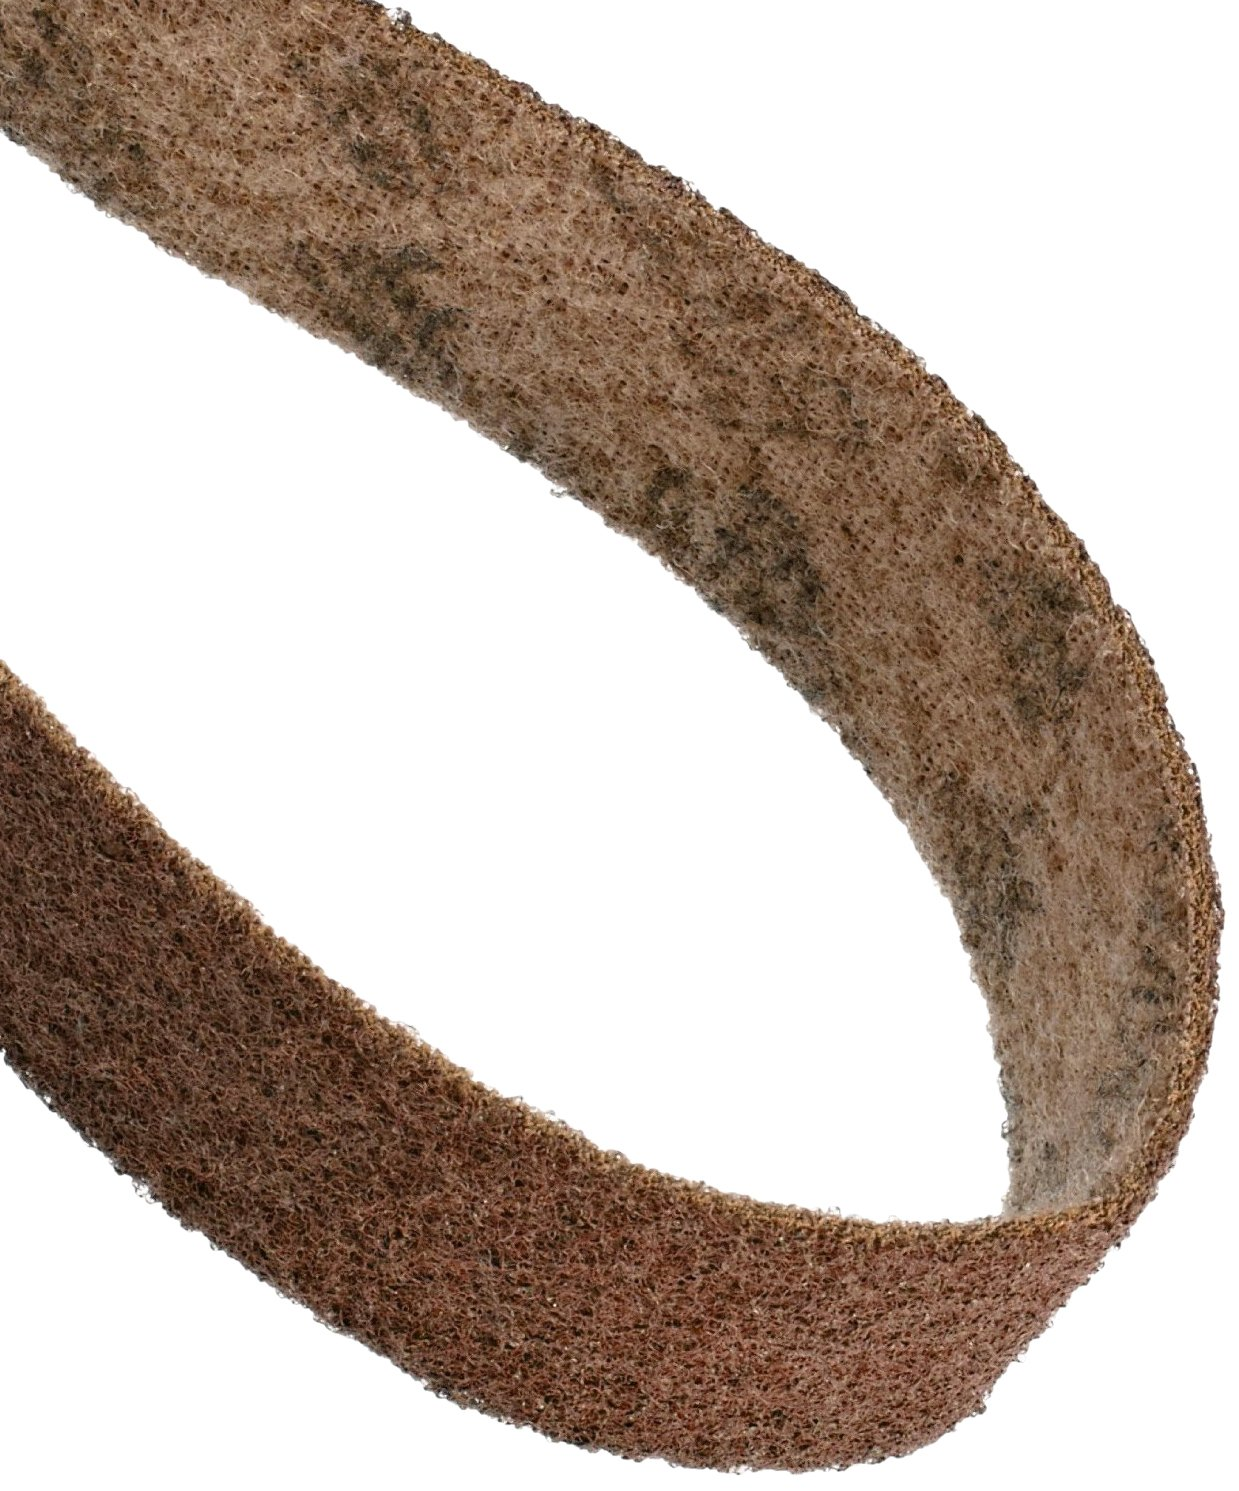 Scotch-Brite Surface Conditioning Belt (Multiple Grit Types/Sizes) 3M